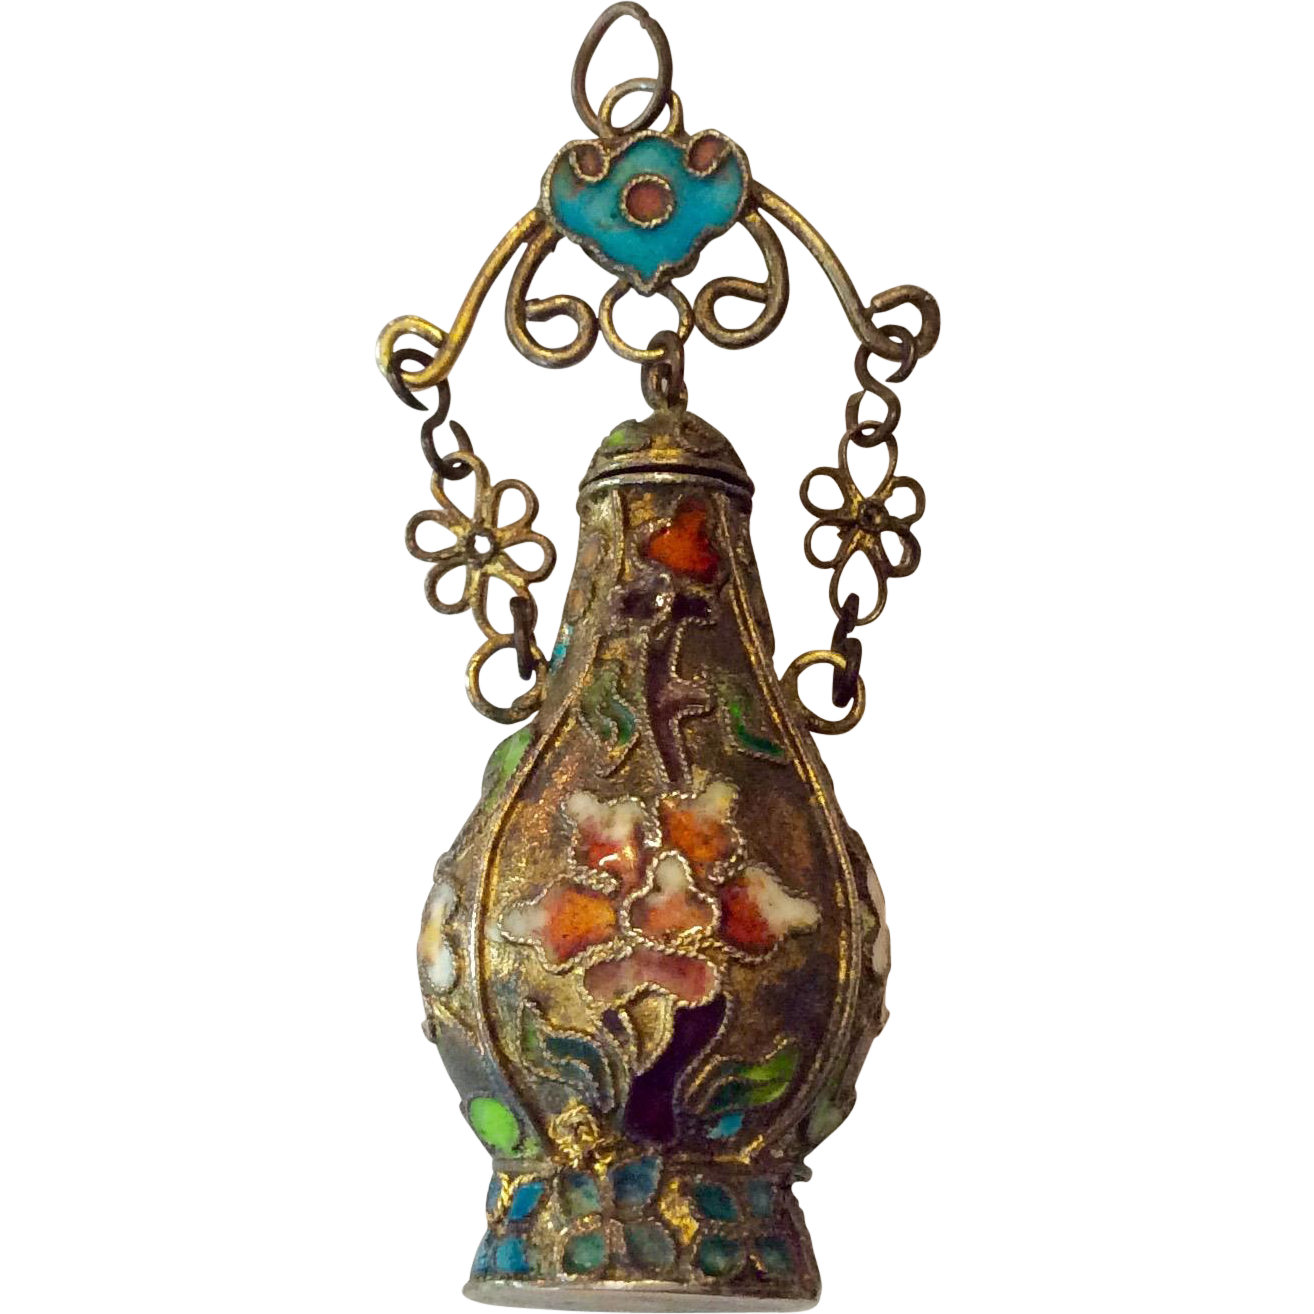 chinese art deco bottle pendant with cloisonn details from caldwells on ruby lane. Black Bedroom Furniture Sets. Home Design Ideas